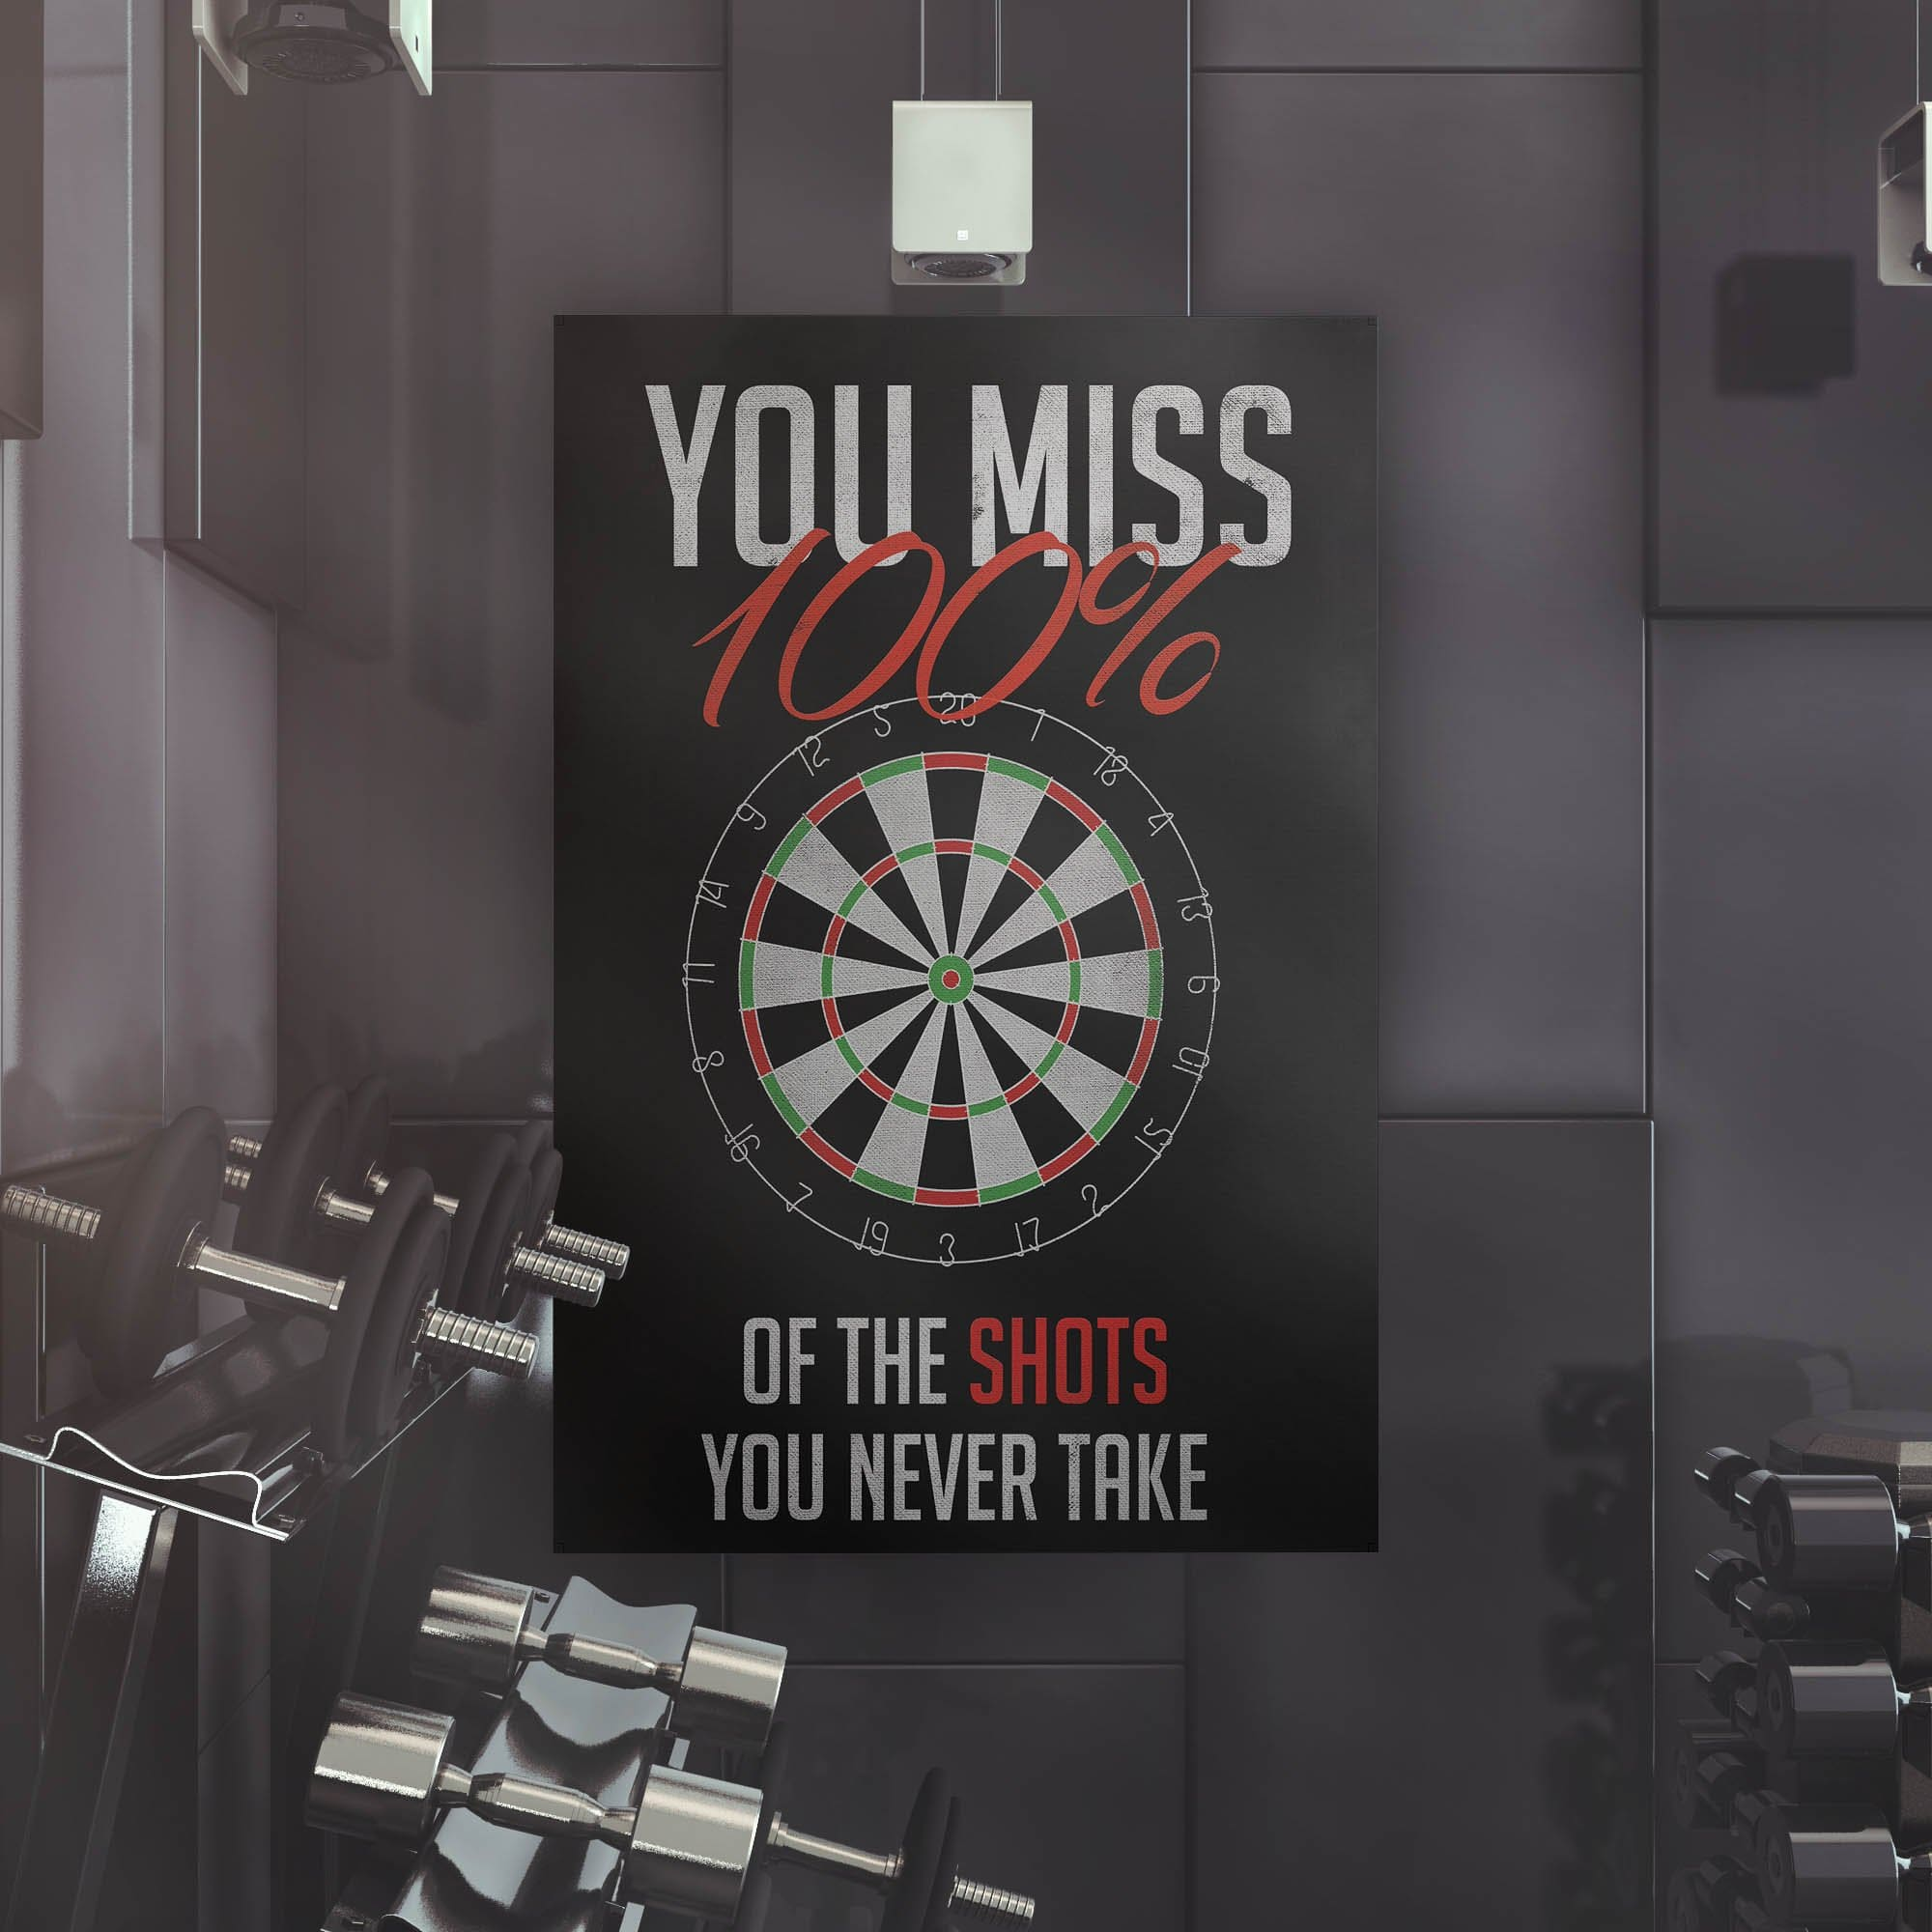 You Miss 100 Of The Shots Dartboard - Framed Canvas Painting Wall Art Office Decor, large modern pop artwork for home or office, Entrepreneur Inspirational and motivational Quotes on Canvas great for man cave or home. Perfect for Artwork Addicts. Made in USA, FREE Shipping.